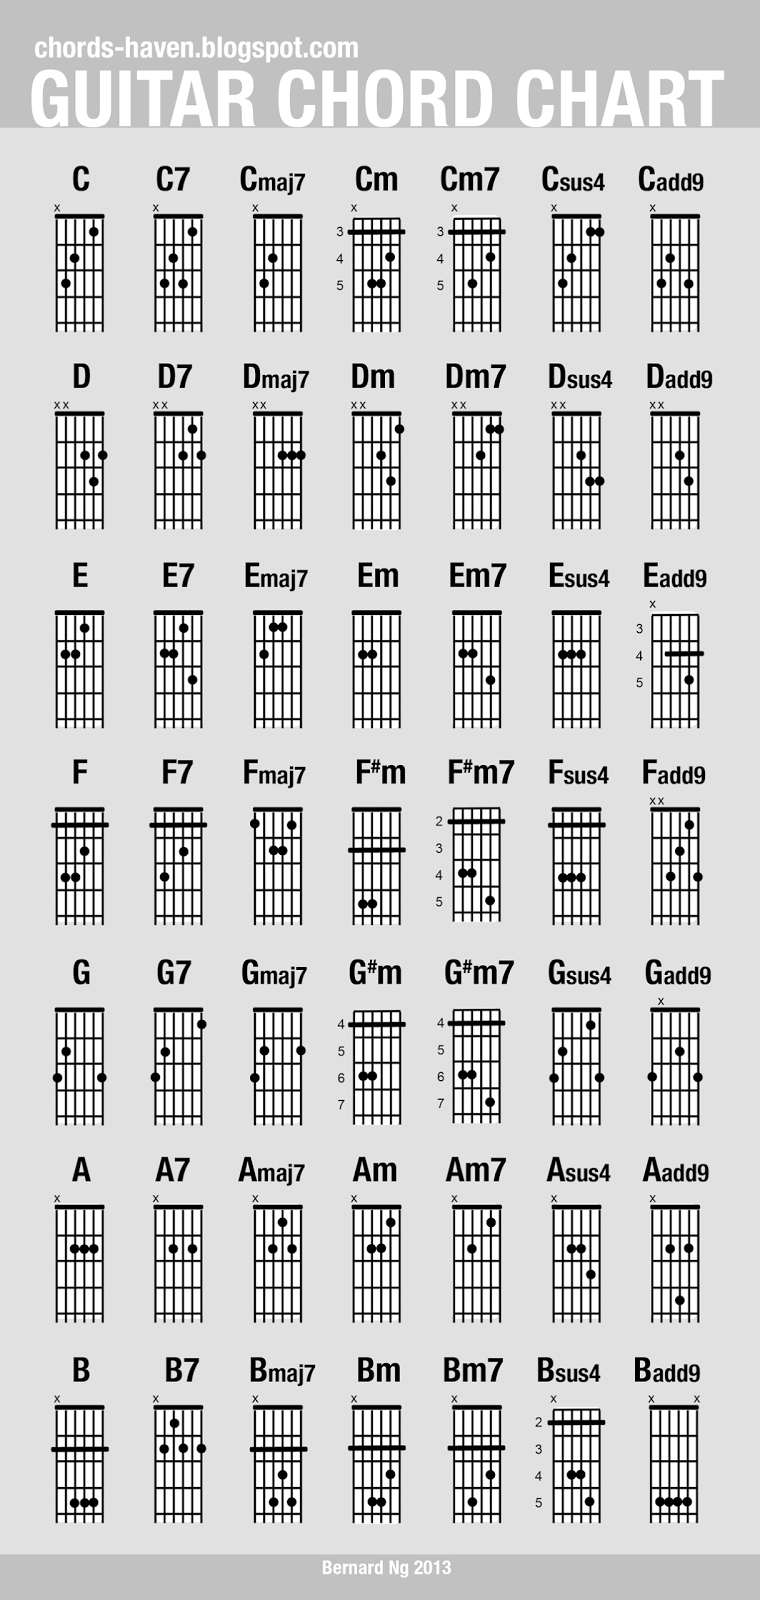 Chord Diagrams Chords Haven